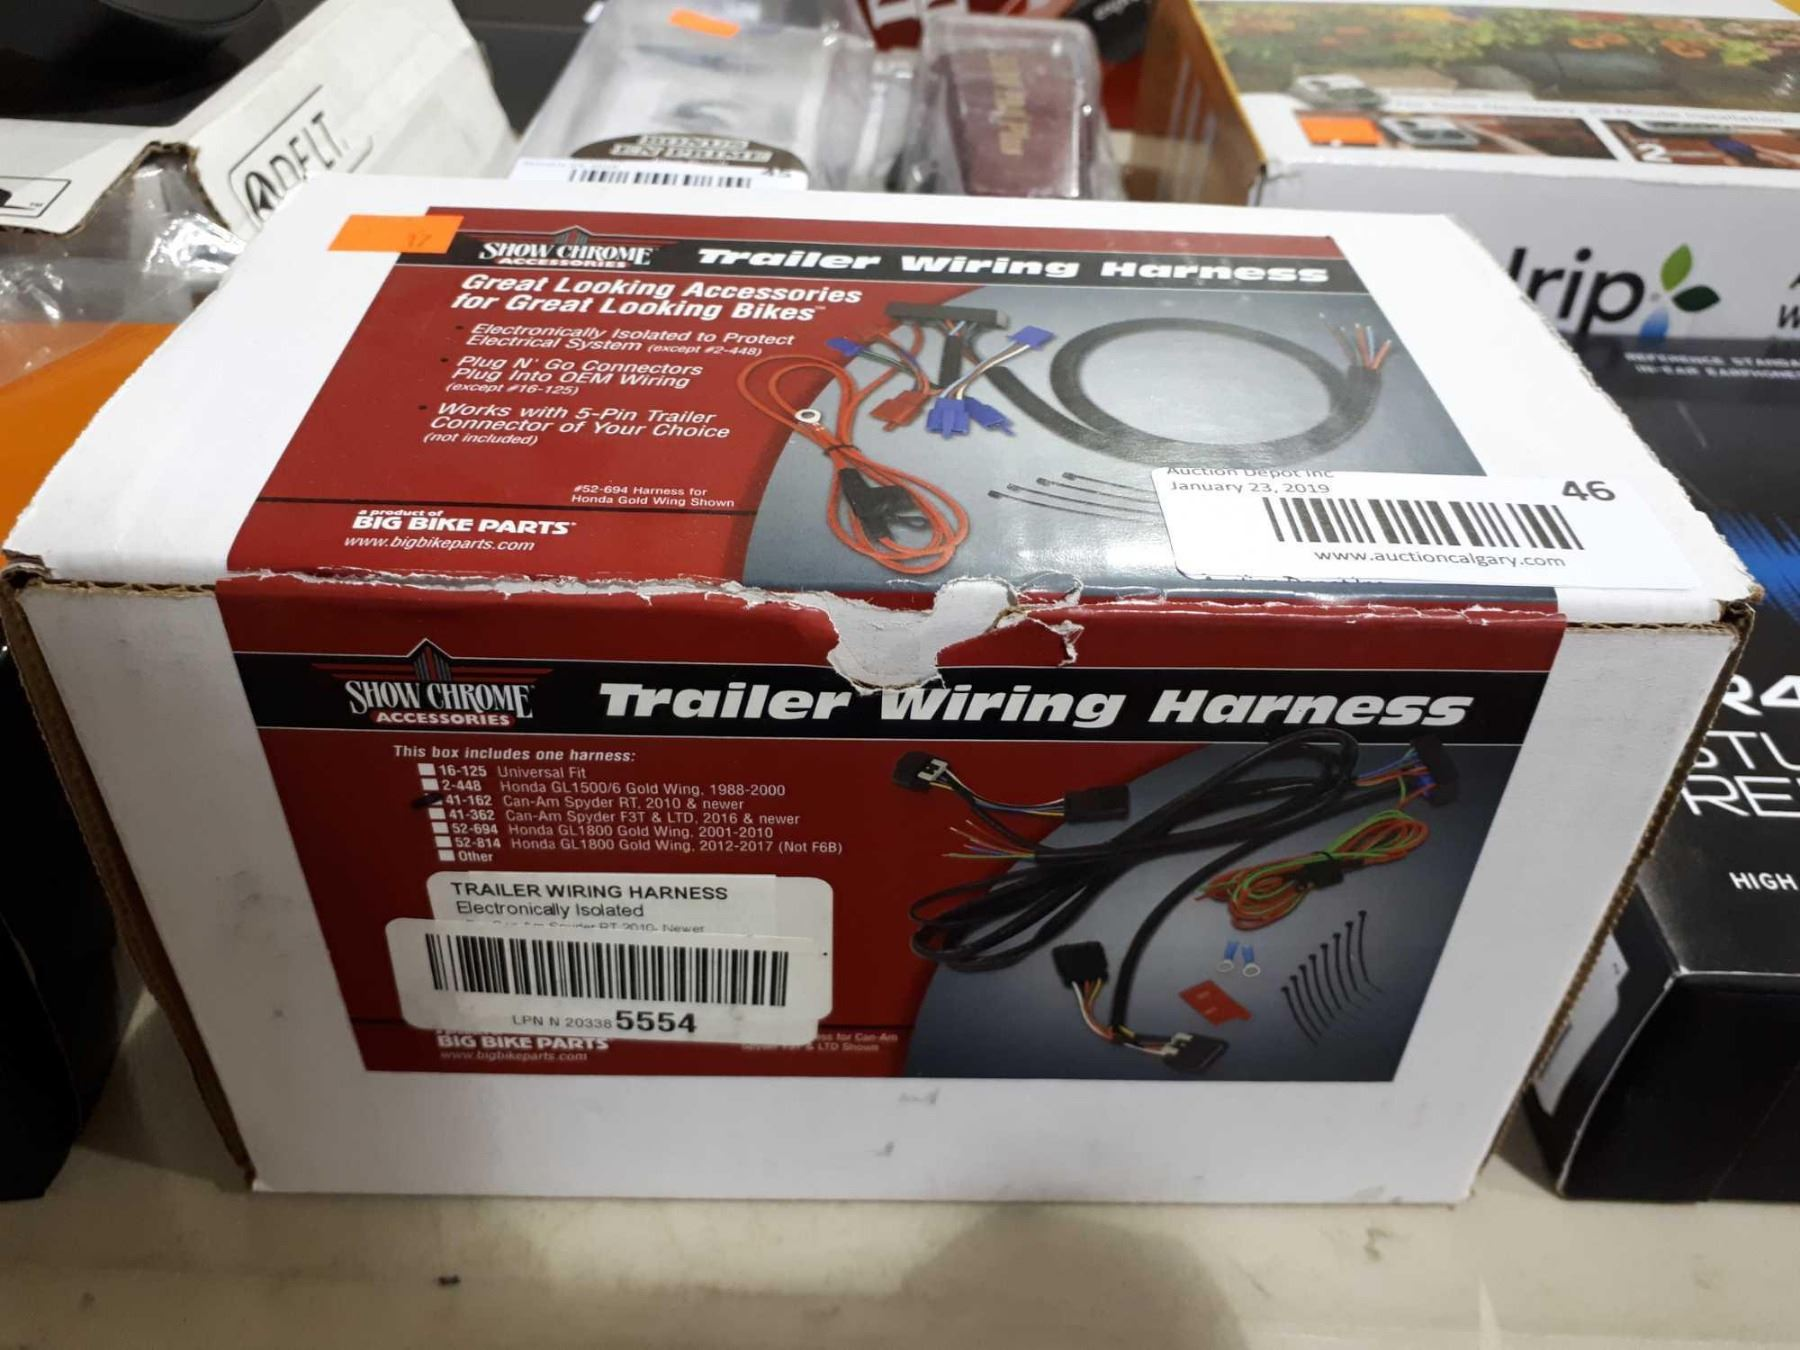 image 1 show chrome trailer wiring harness [ 1800 x 1350 Pixel ]